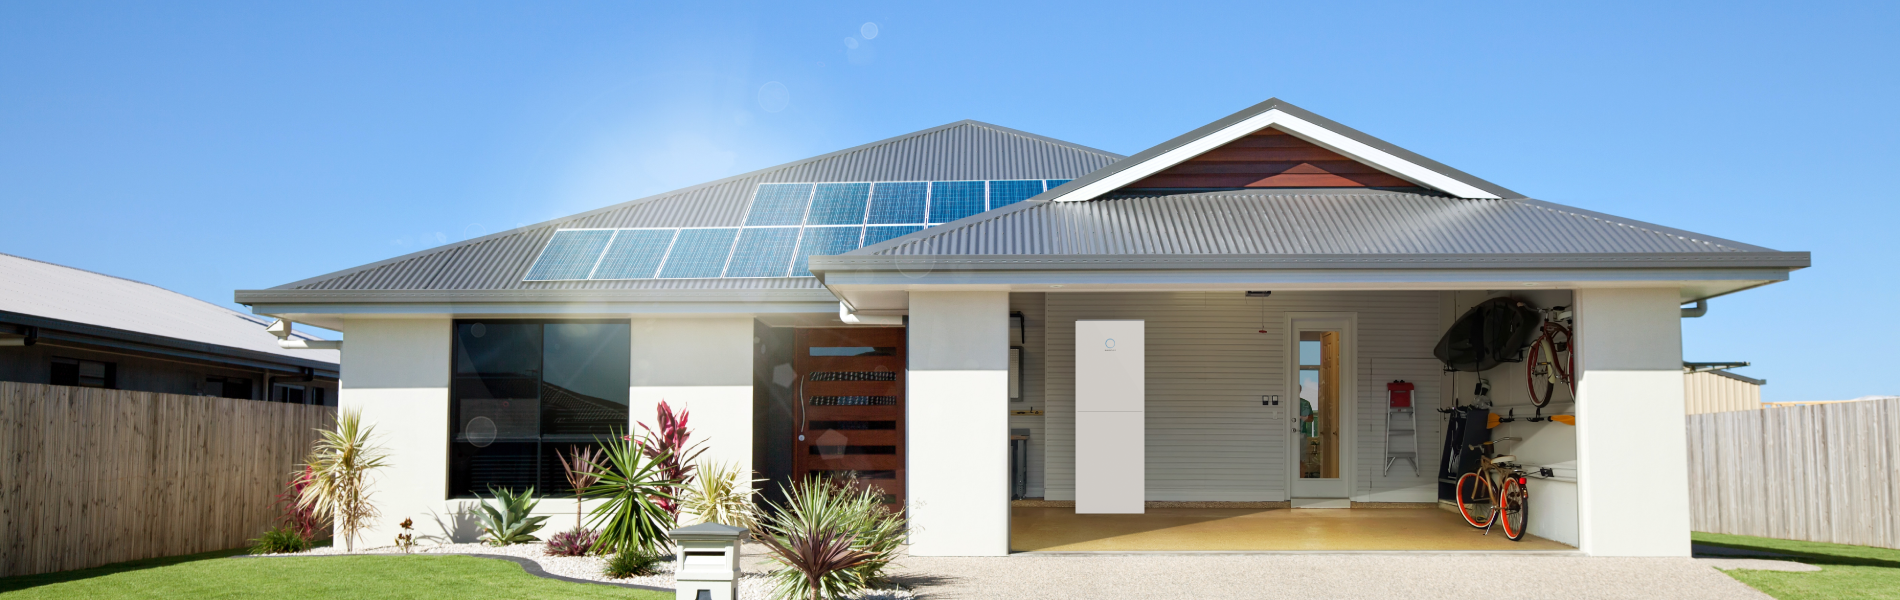 one story house with a sonnenBatterie hybrid